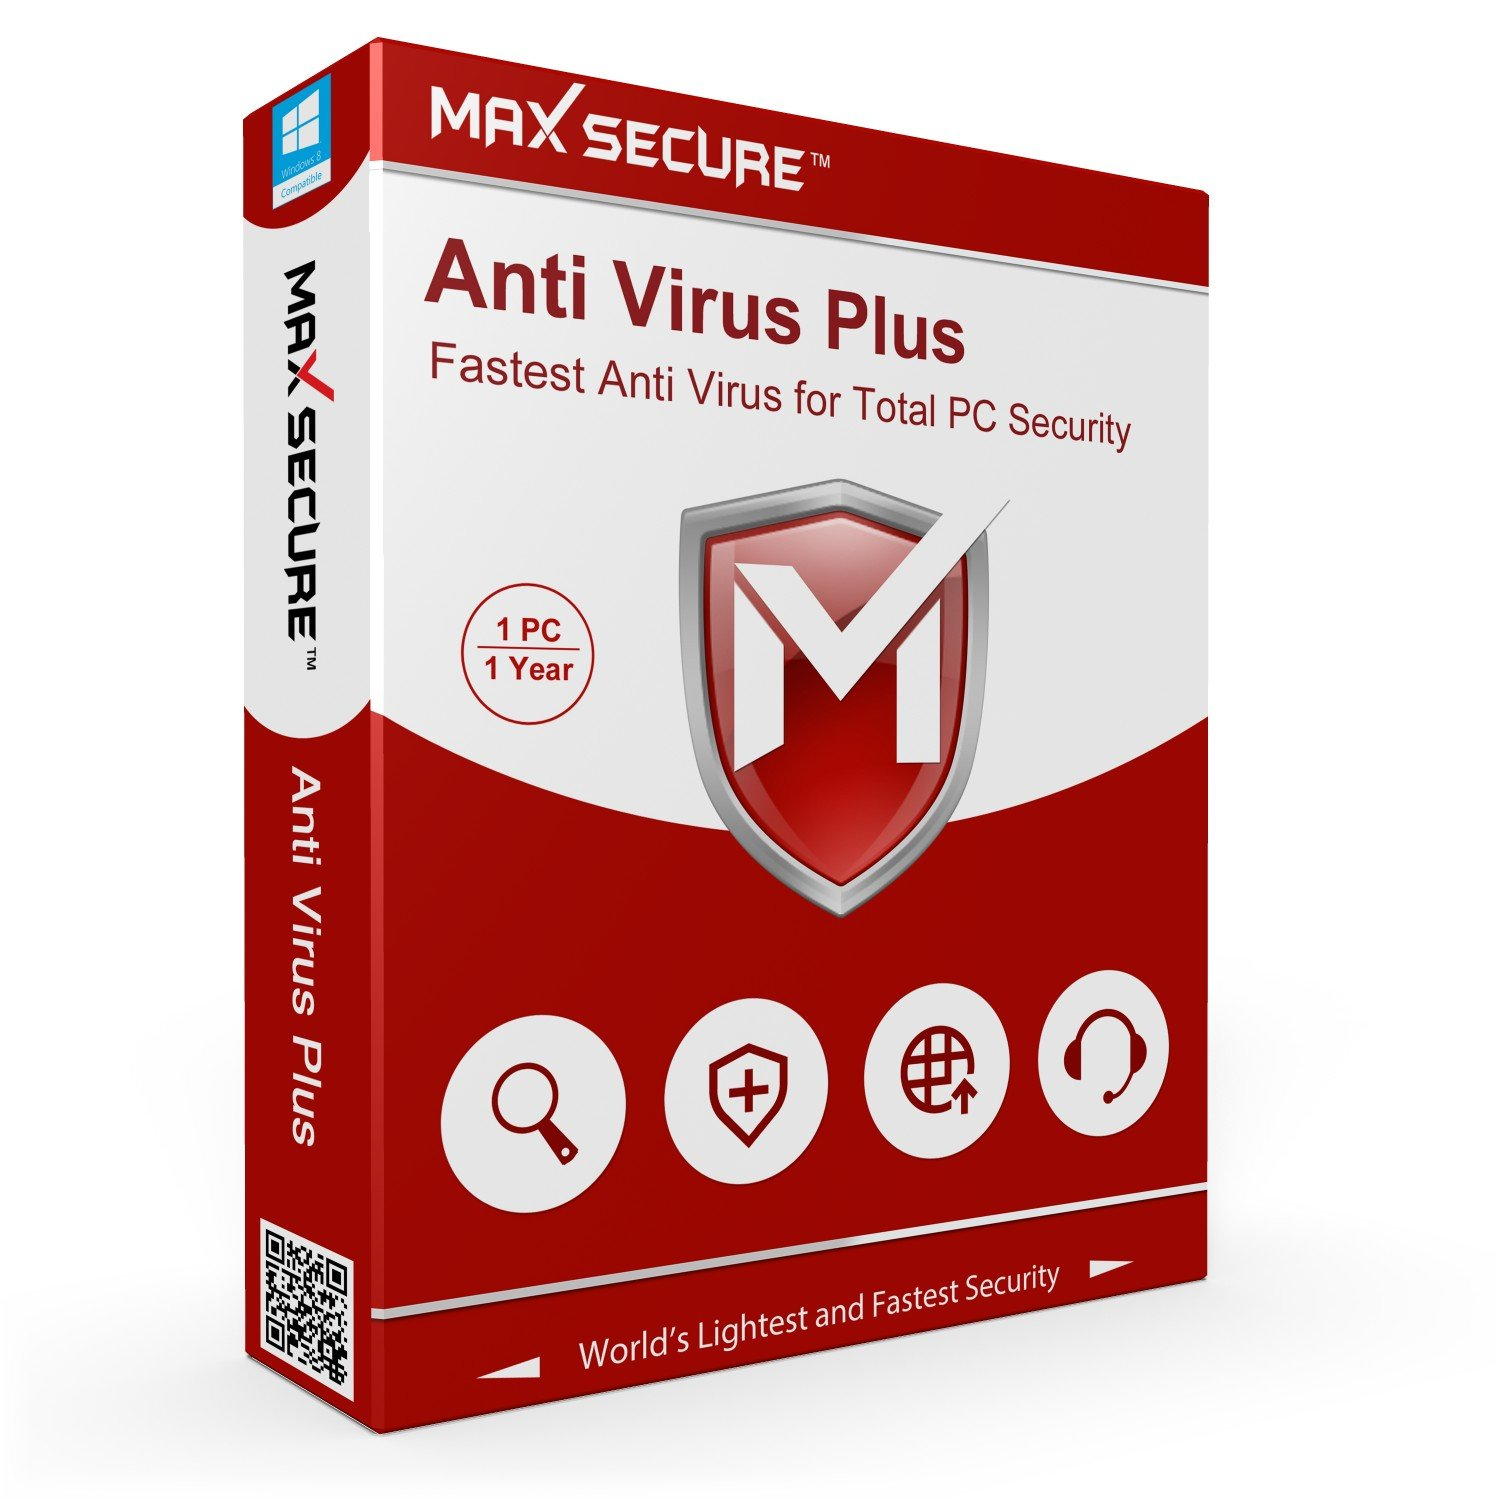 Upto 65% off on MaxSecure Software By Amazon